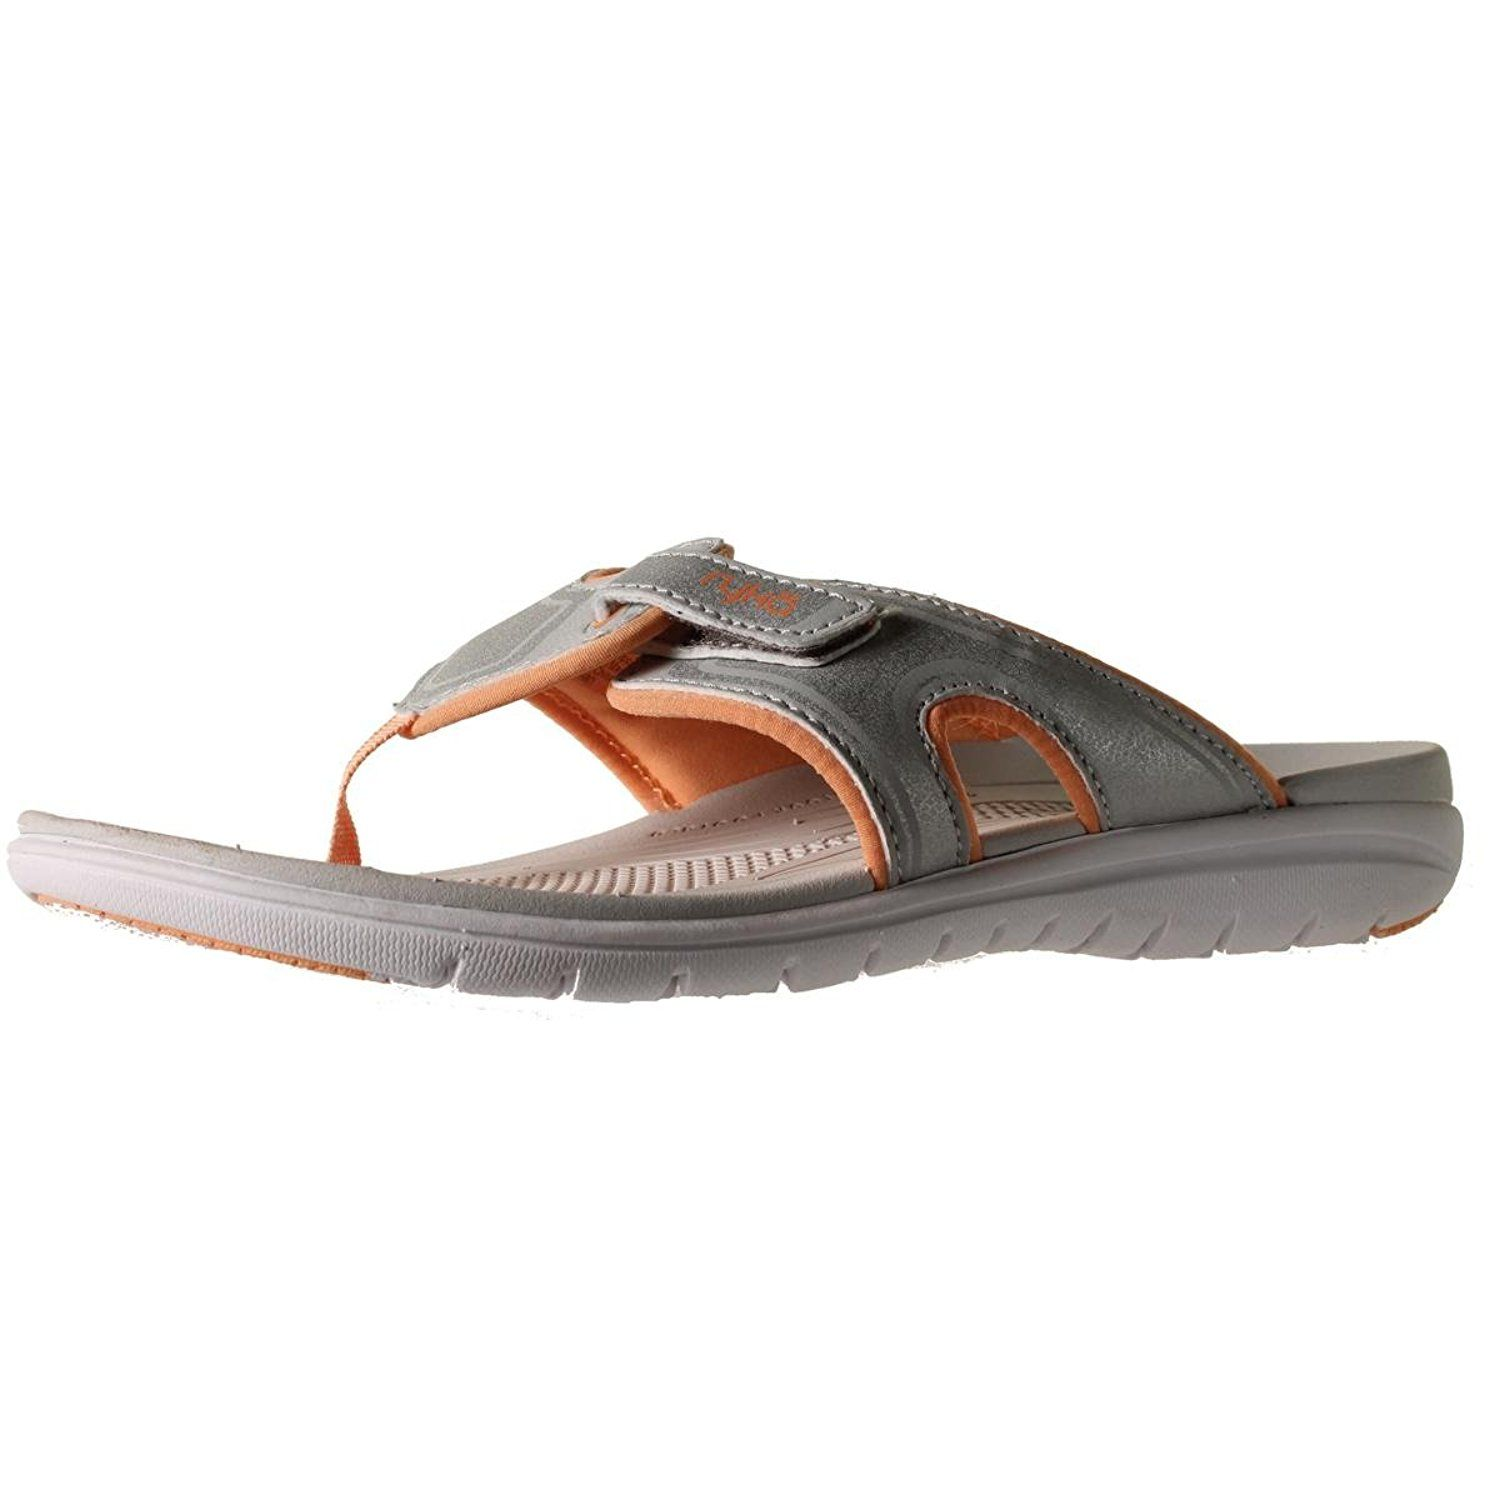 4610d275b74c4b Ryka Womens Shimmy Faux Leather Slide Flip-Flops   To view further for this  item